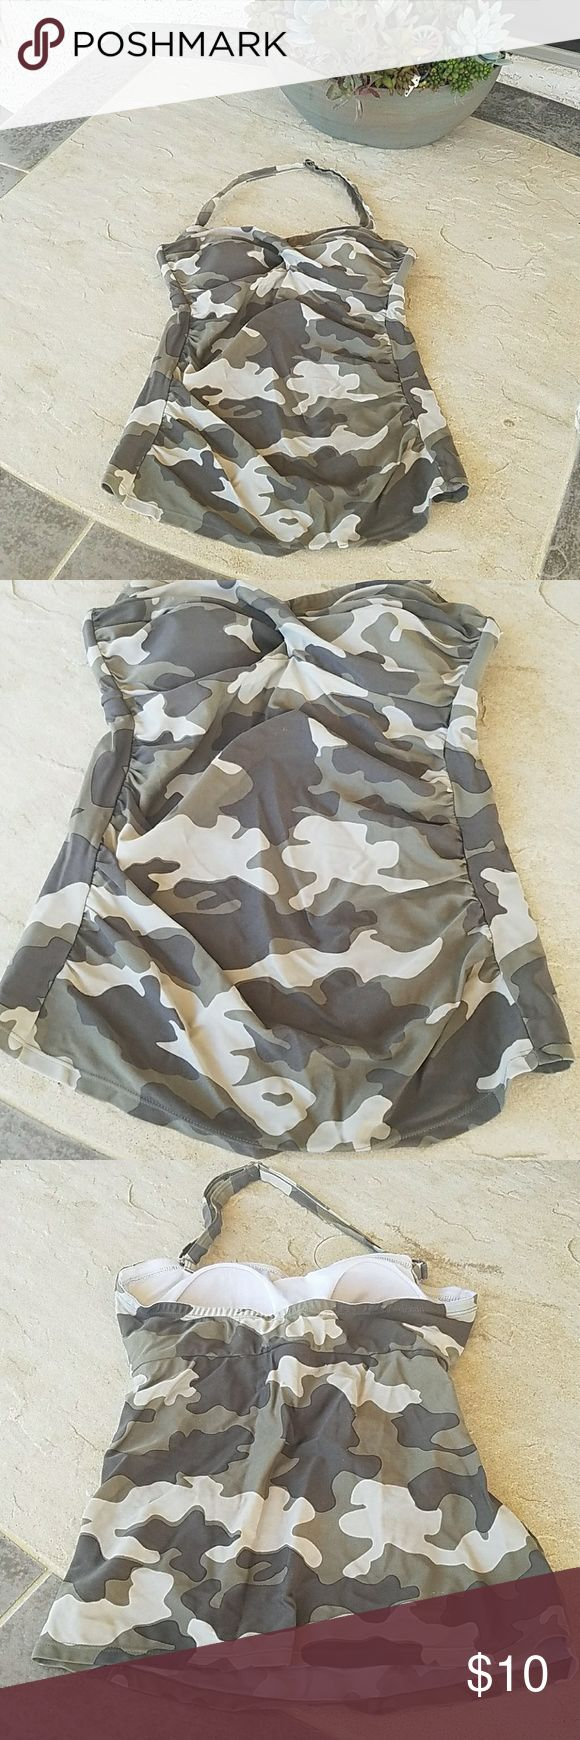 Camo Tankini Halter camouflage tankini. Brand: Venus. Size 6. Fits a full C cup. Rouching sides. Lightly padded. No defects but slight signs of wear. 80% Polyamid, 20% Elasthan. Adjustable strap but is also removable to wear as strapless. Final price unless bundled. Comes from a smoke free home. No trades, no holds, thank you. Venus Swim